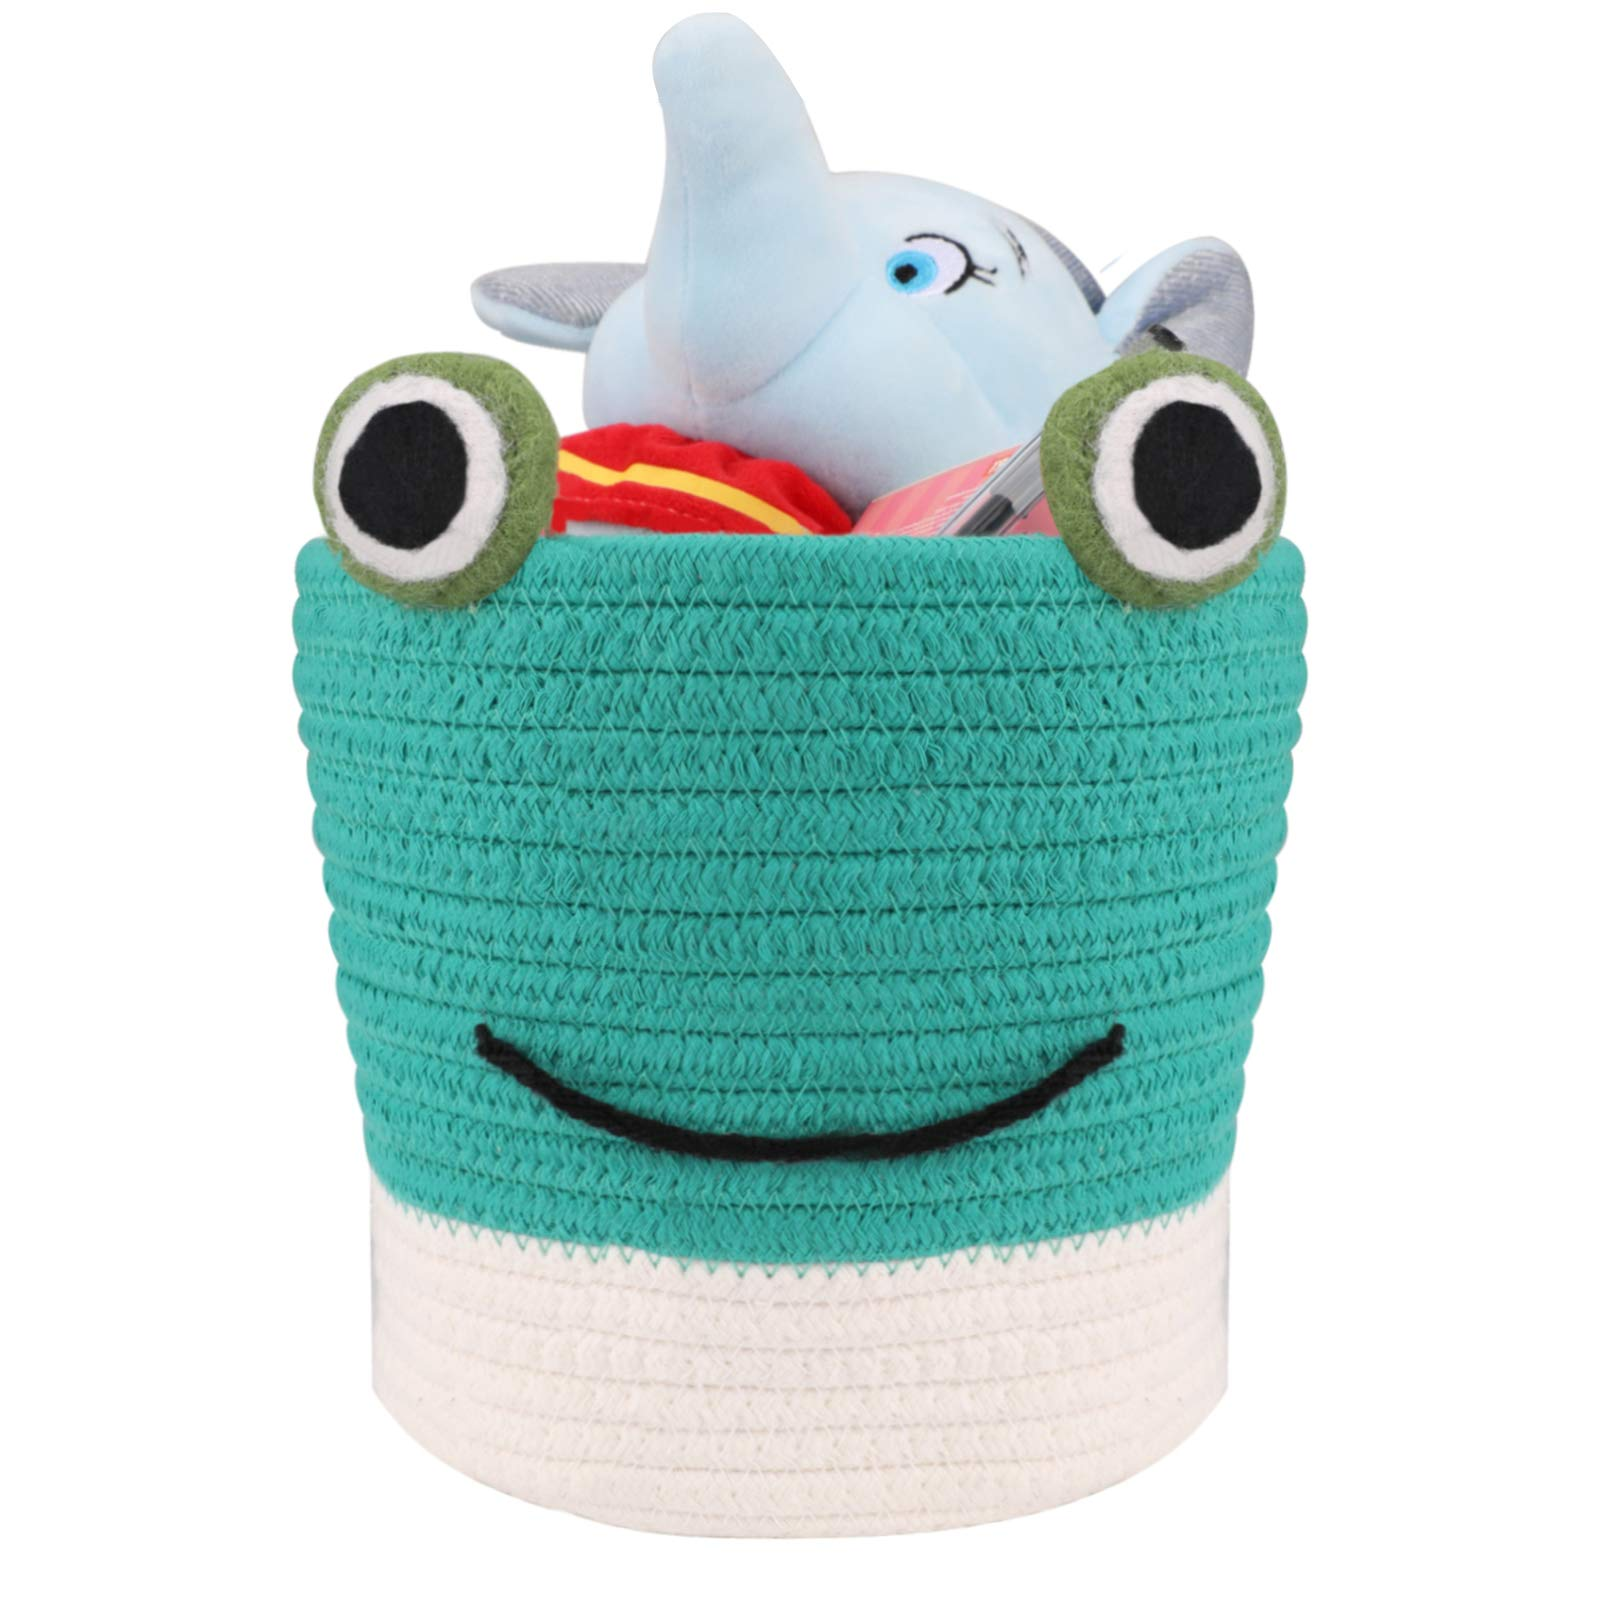 Cute Baby Gift Basket Small Cotton Rope Basket | LONTAN Frog Design Woven Basket Collapsible Baby Room Basket Cute Storage Bin for Candy, Pen, Toys, Green, 8''X7''